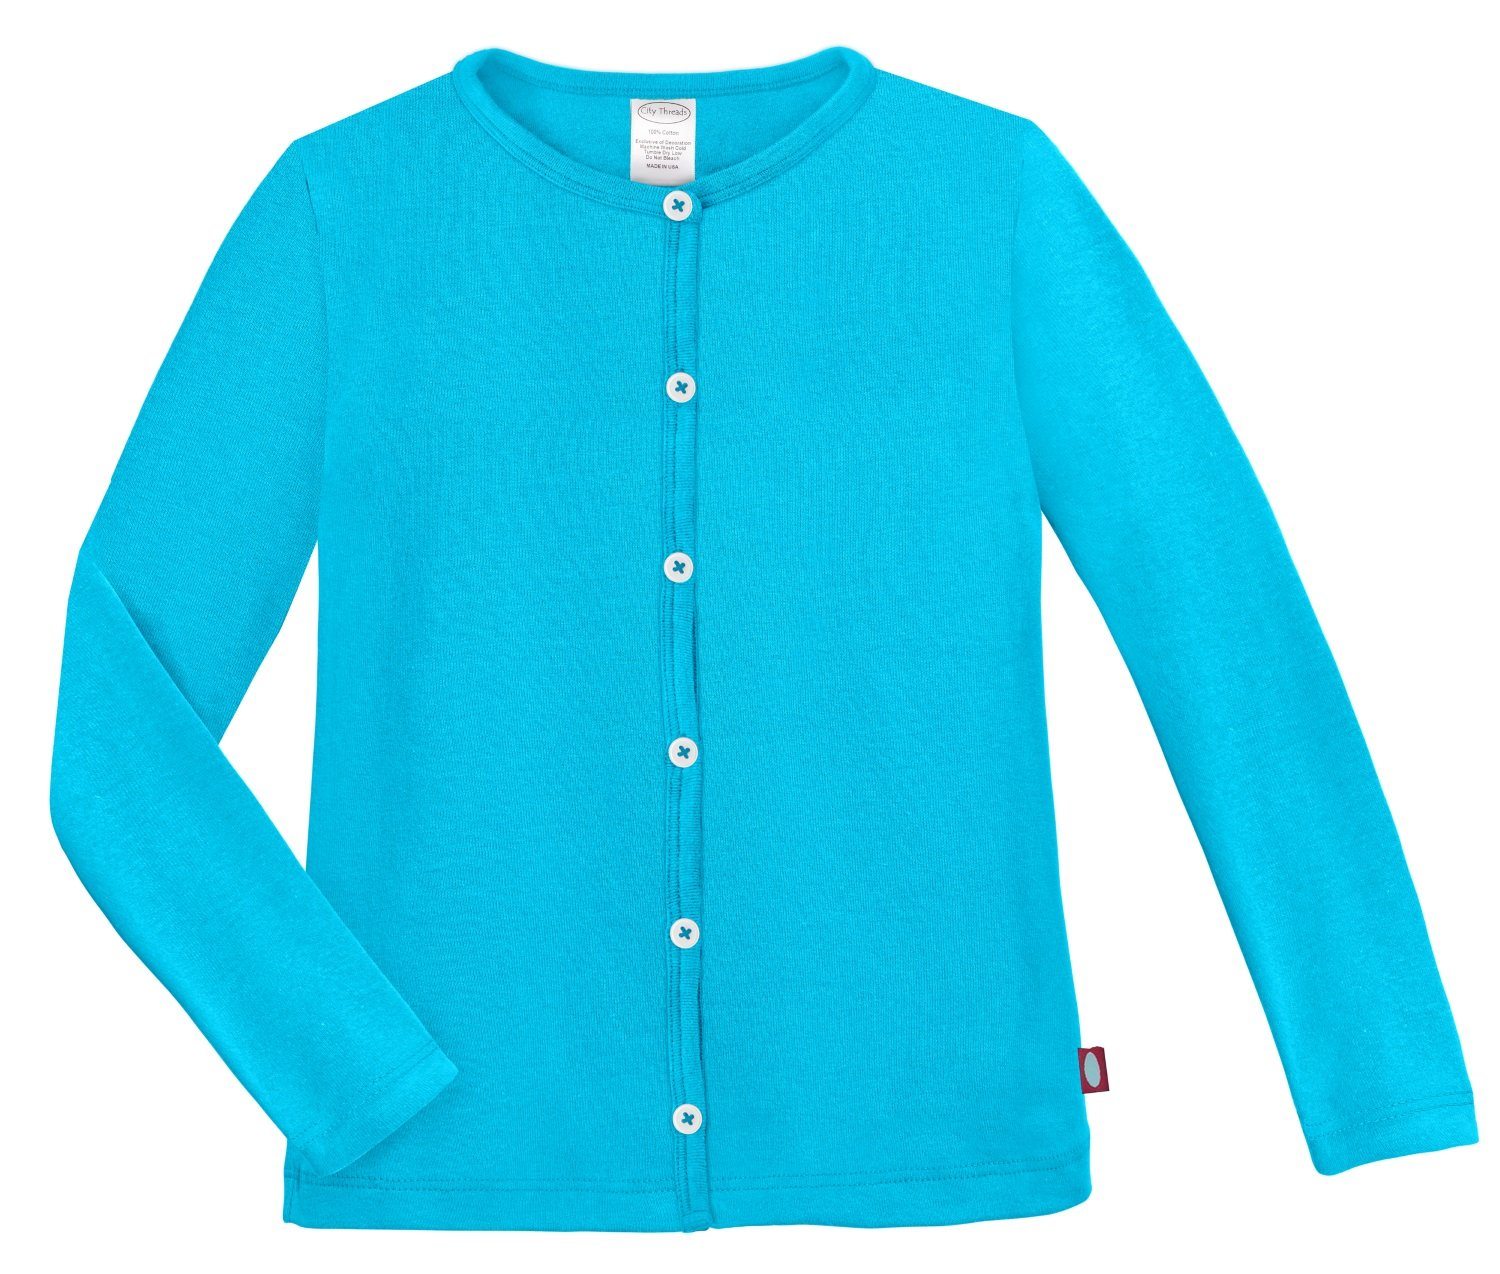 City Threads Girls Cardigan Top Button Down Sweater Layering School Play For Sensitive Skin SPD Sensory Friendly, Turquoise, 6 by City Threads (Image #3)